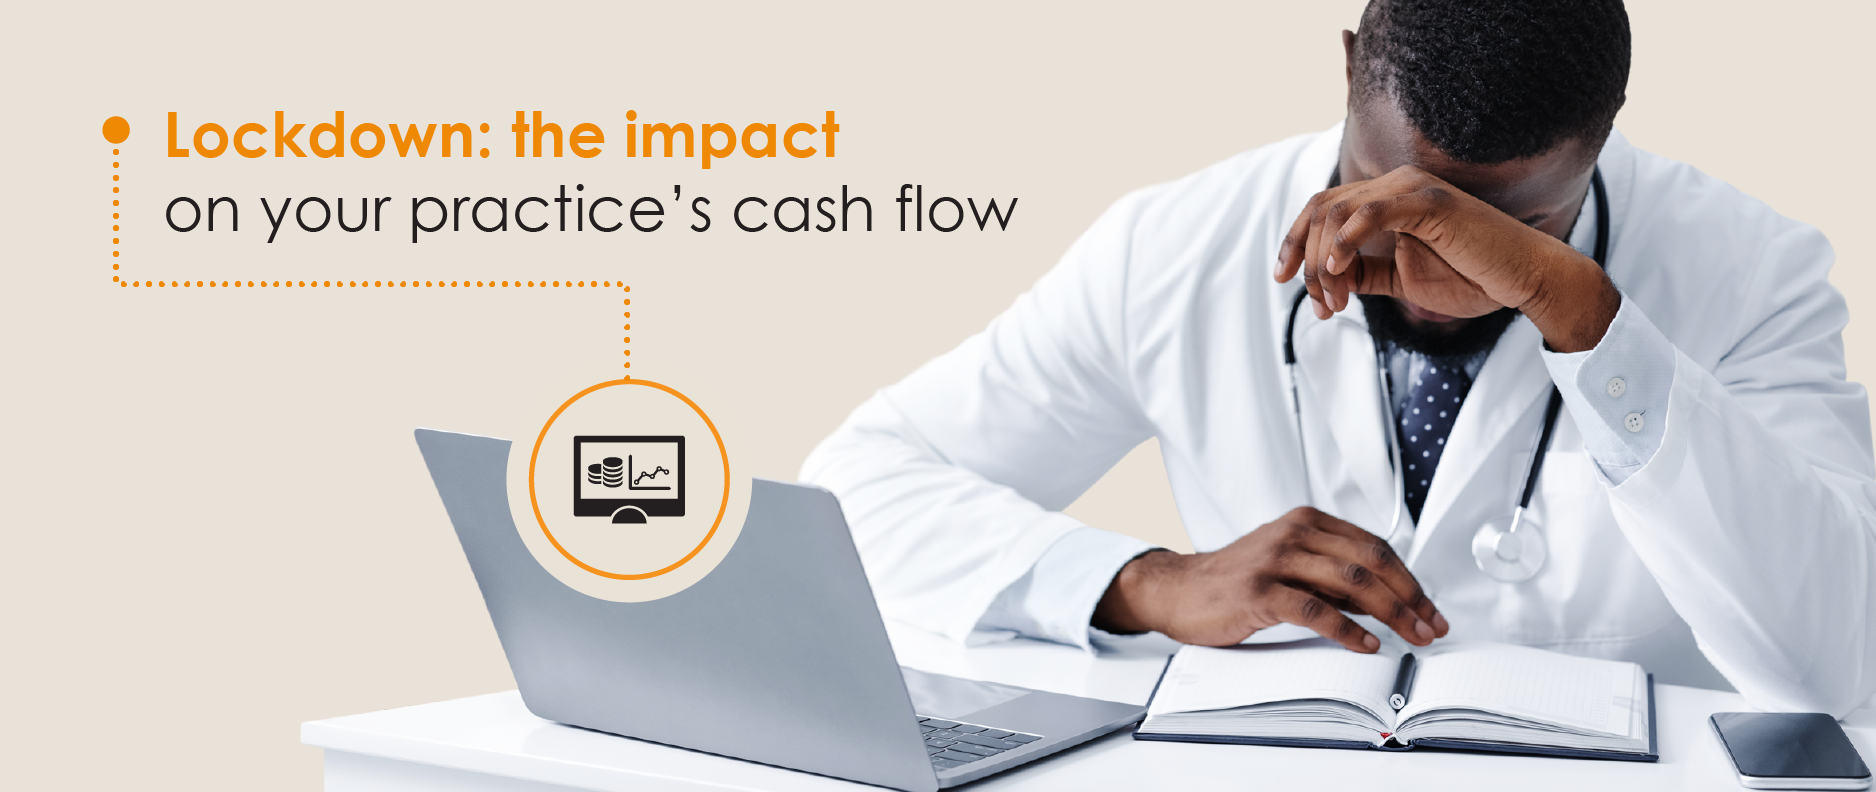 How lockdown impacts your medical practice's cash flow